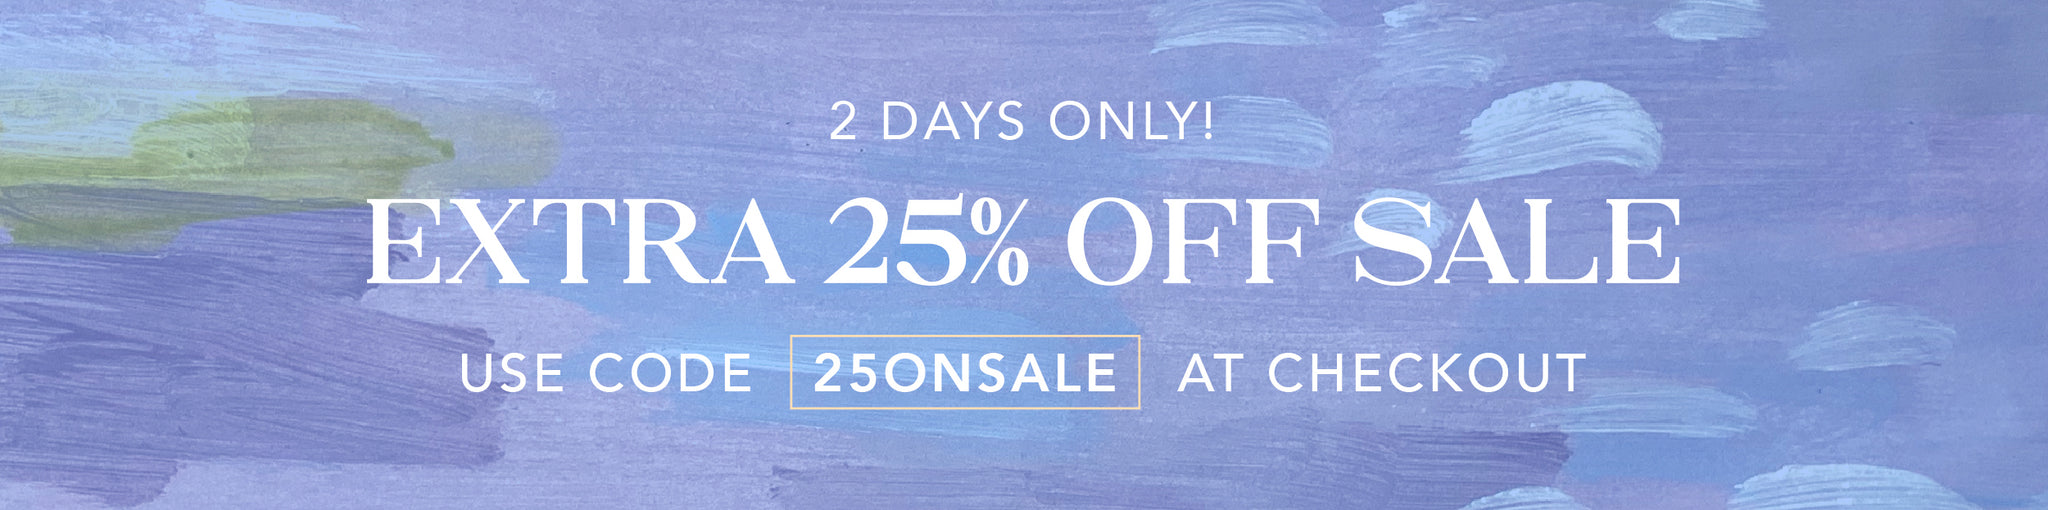 extra 25% off sale with code 25onsale at checkout.